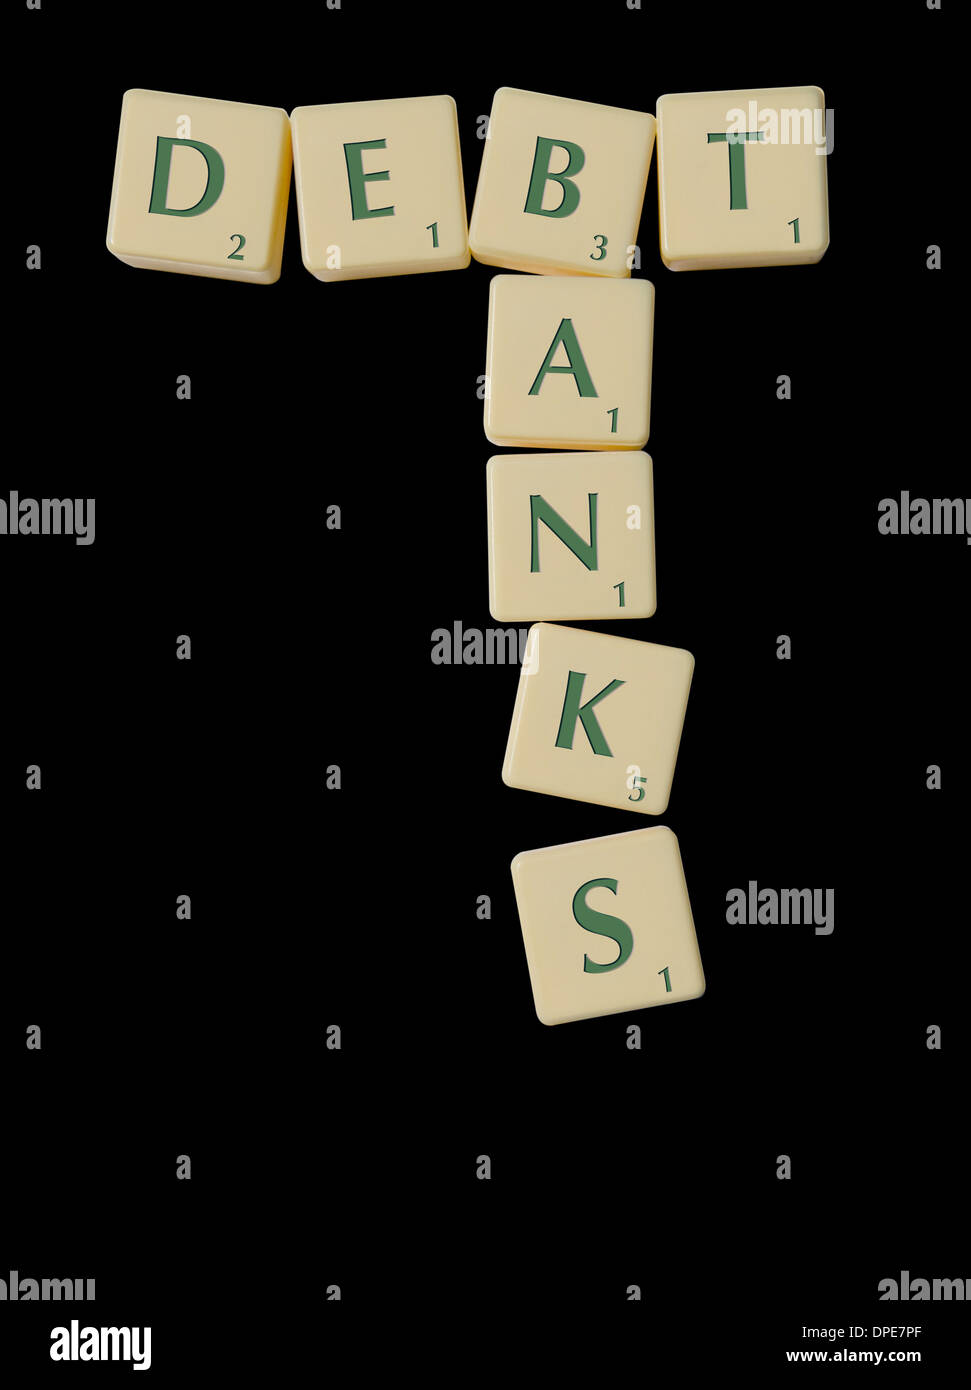 DEBT and BANKS spelled out in Scrabble Pieces. Concept Black Background - Stock Image